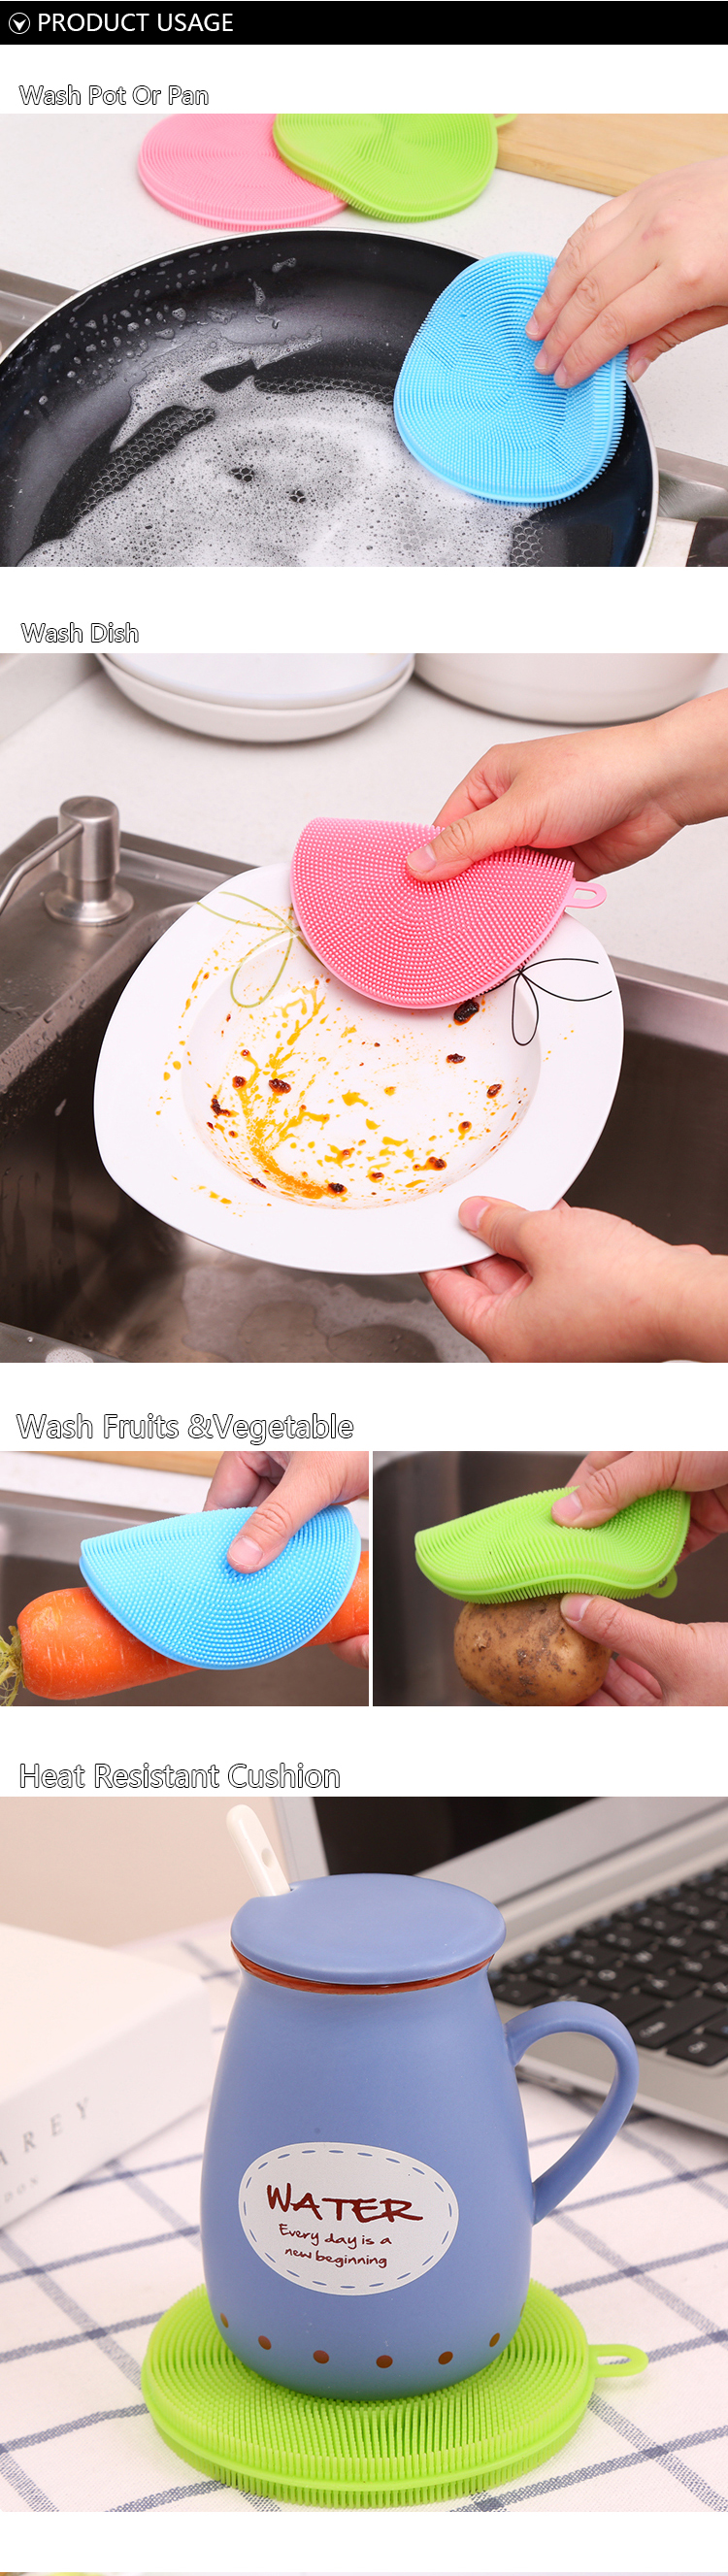 dishwashing brush kitchen